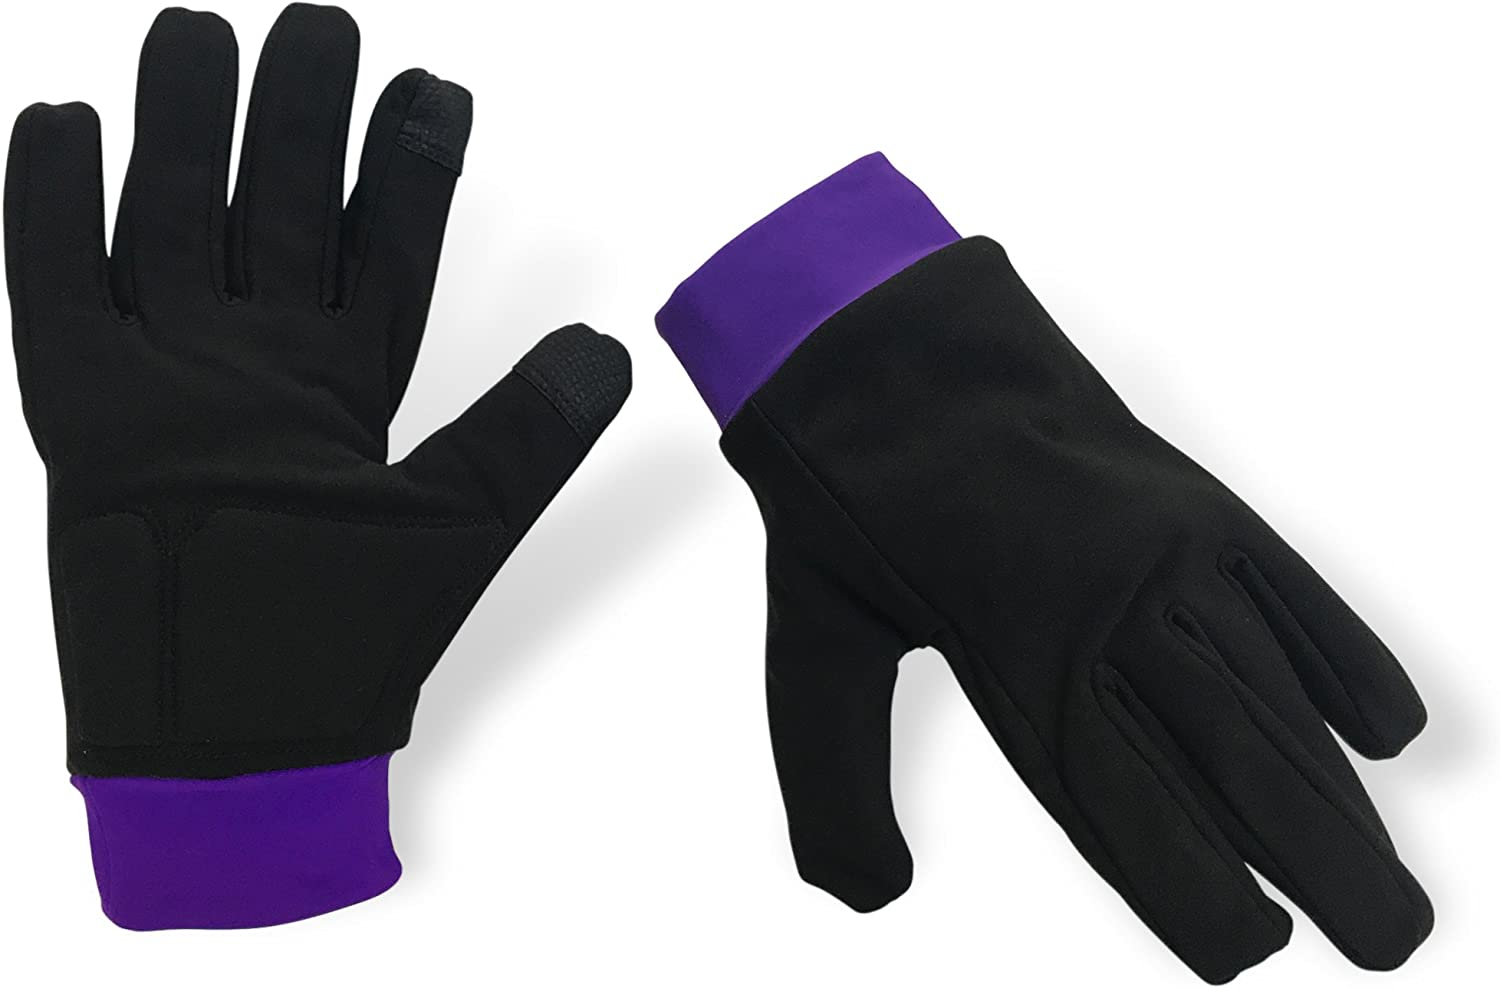 ColorFlow Skating Water-Resistant Ice Skating Gloves with Protective Padding, Touchscreen Fingertips, Fleece Lining: Sports & Outdoors